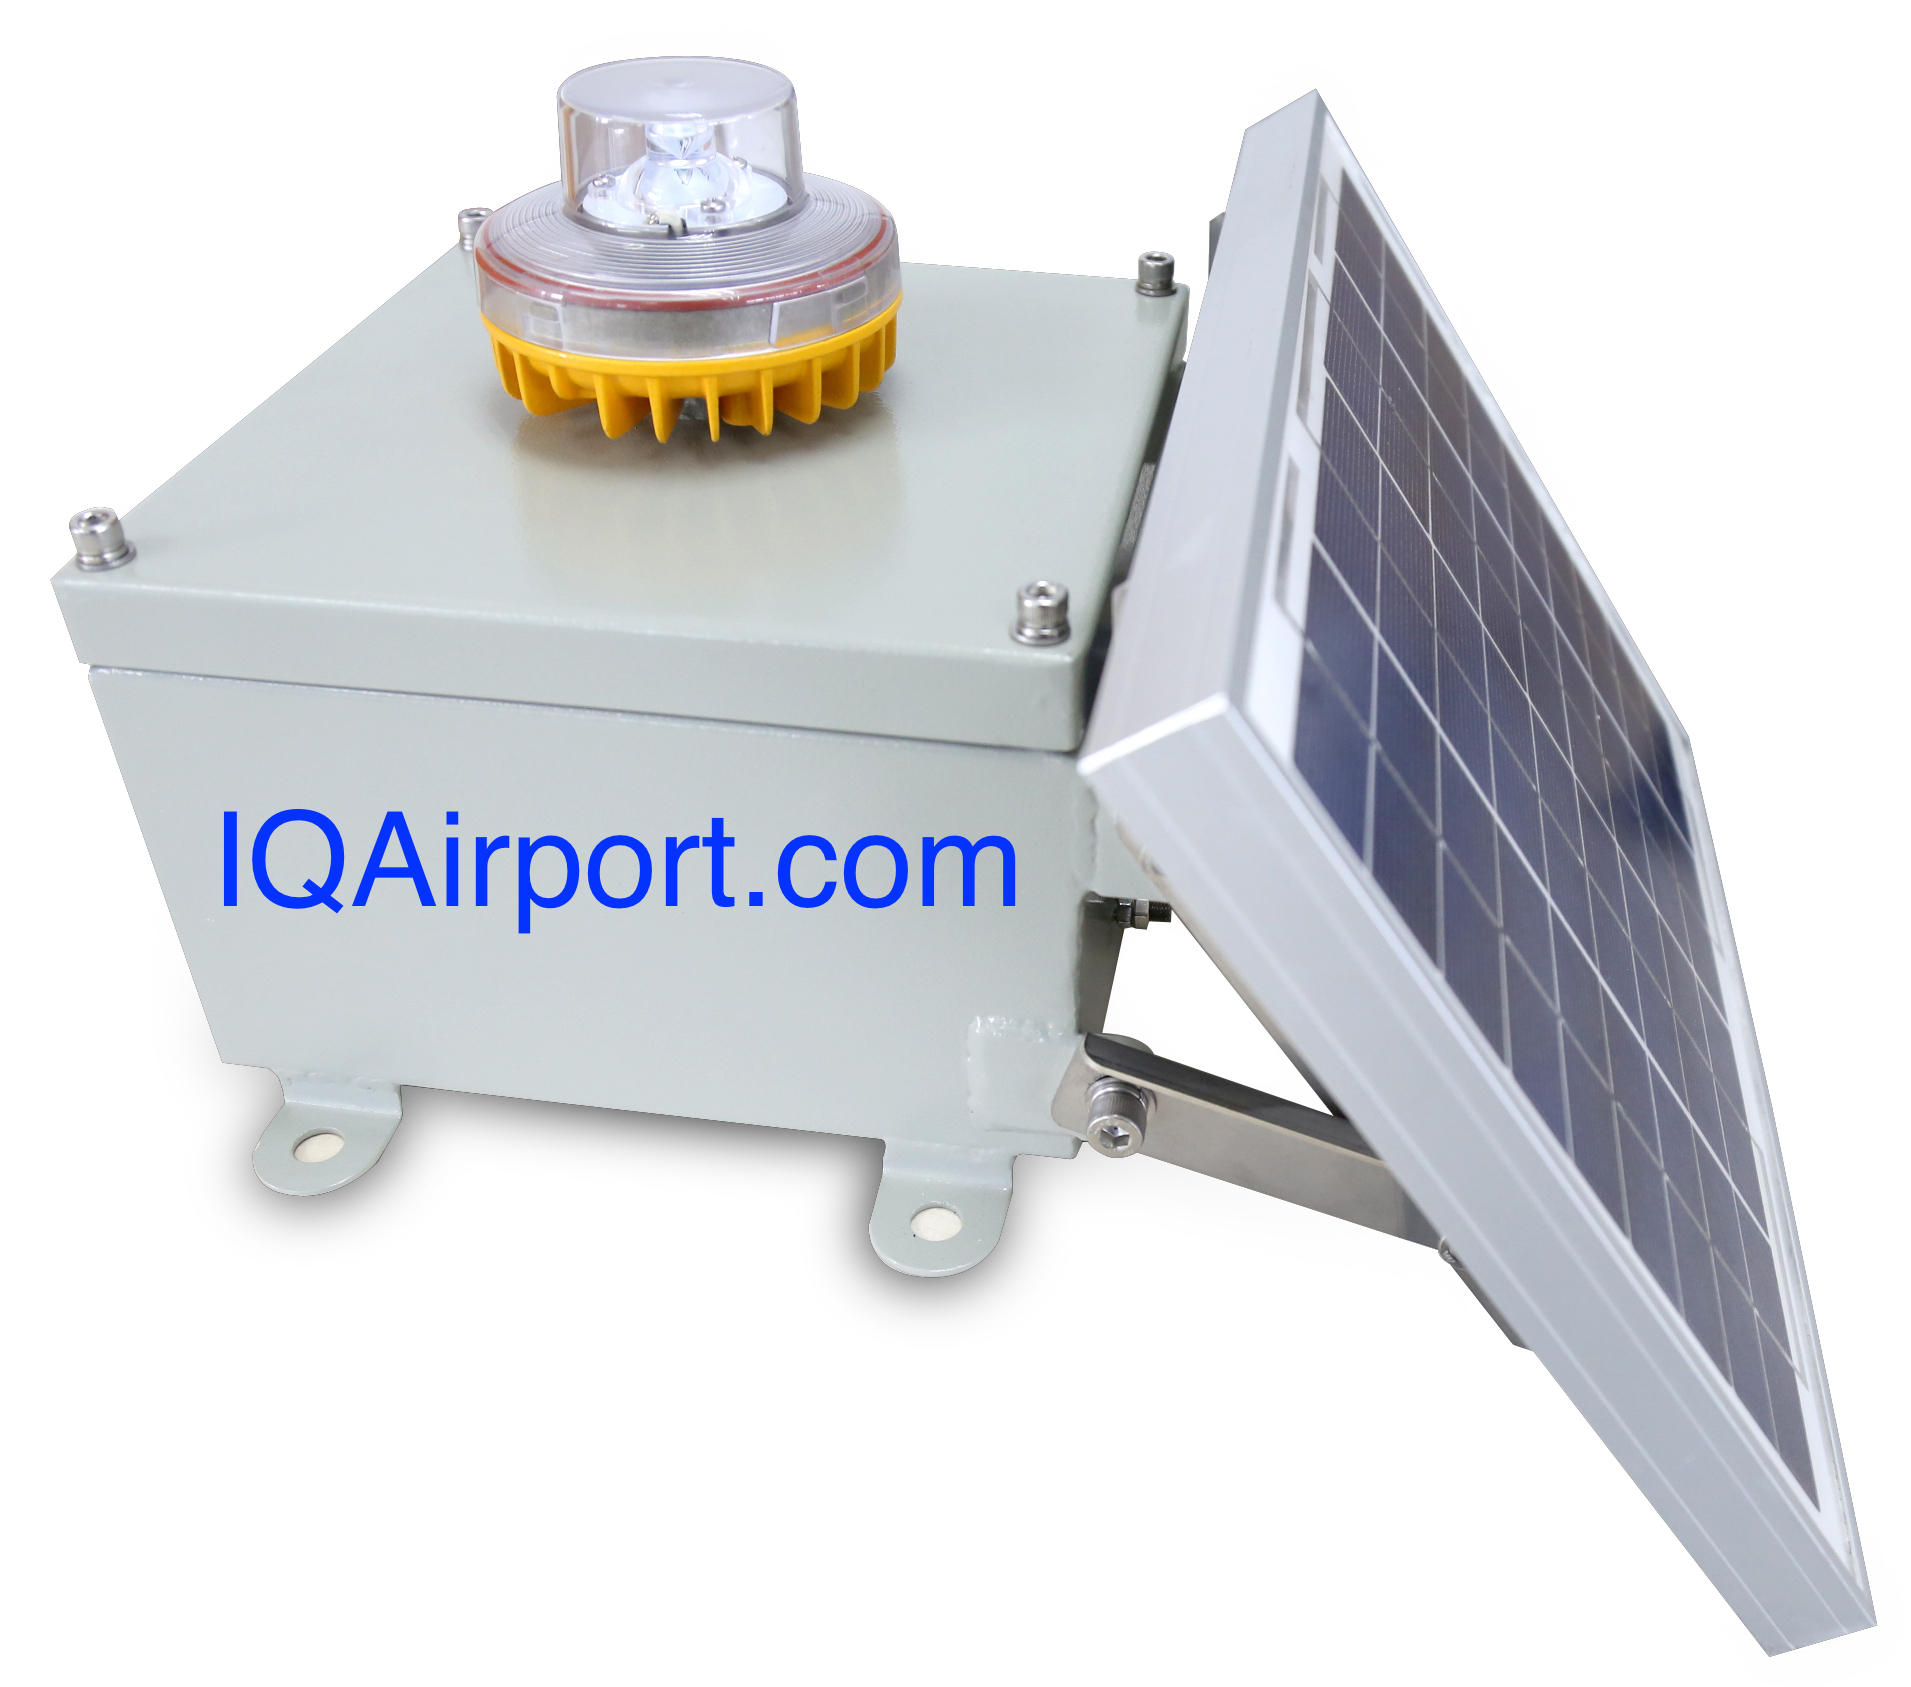 Solar Crane Obstruction Light L-810, Solar Aviation Warning Lights, Solar Obstruction Light, Solar Powered Obstruction Light, LED Solar Aircraft Light, Solar Aviation Obstruction Lights, Solar Tower Obstruction Light for Night Marking Telecommunication Towers, Solar Crane Obstruction Light, Solar Powered Aviation Warning Lights.